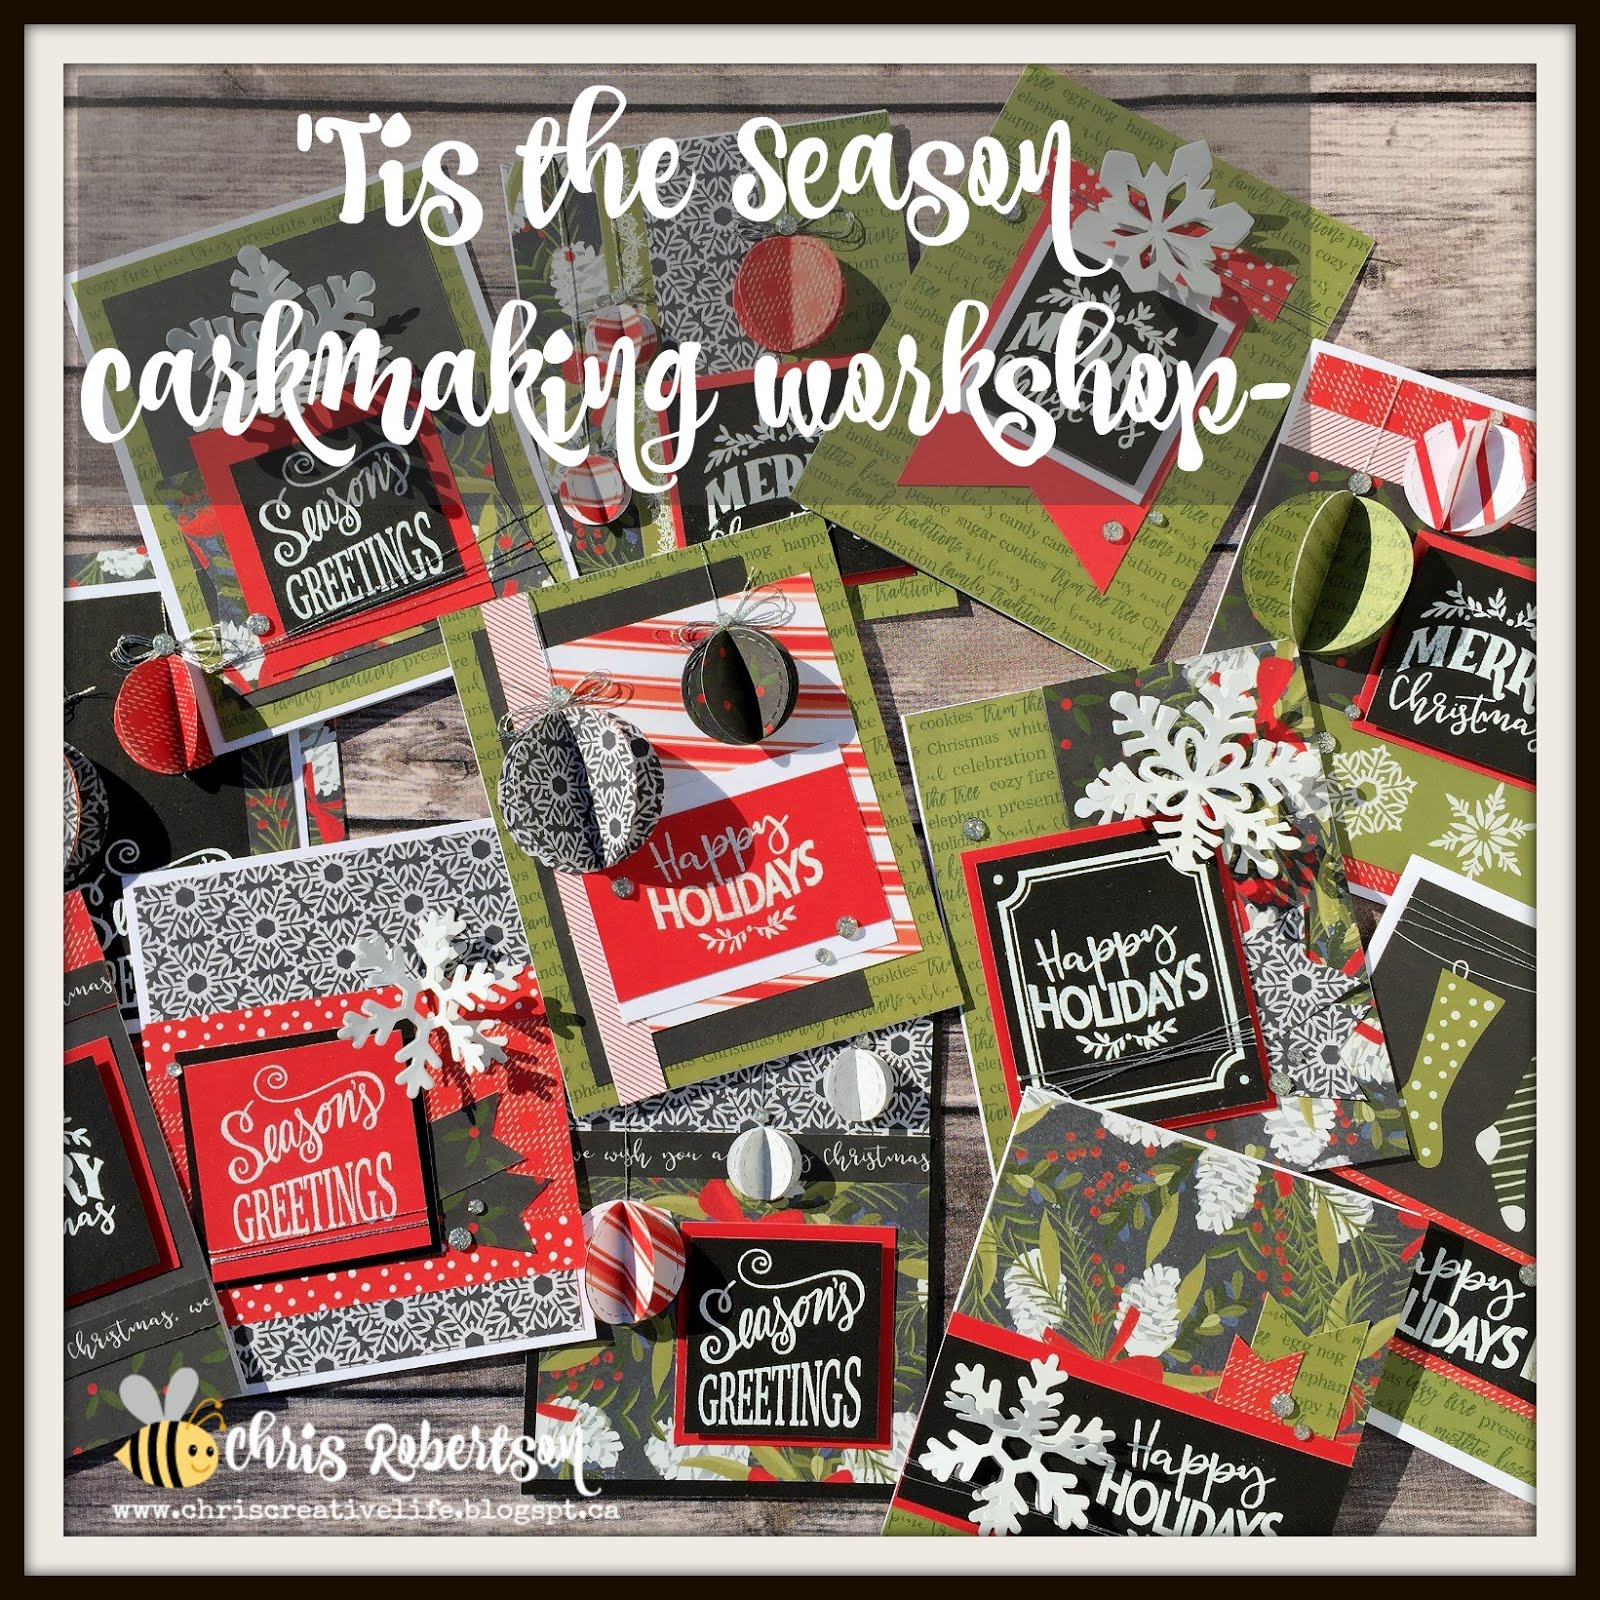 'Tis the Season Cardmaking Workshop